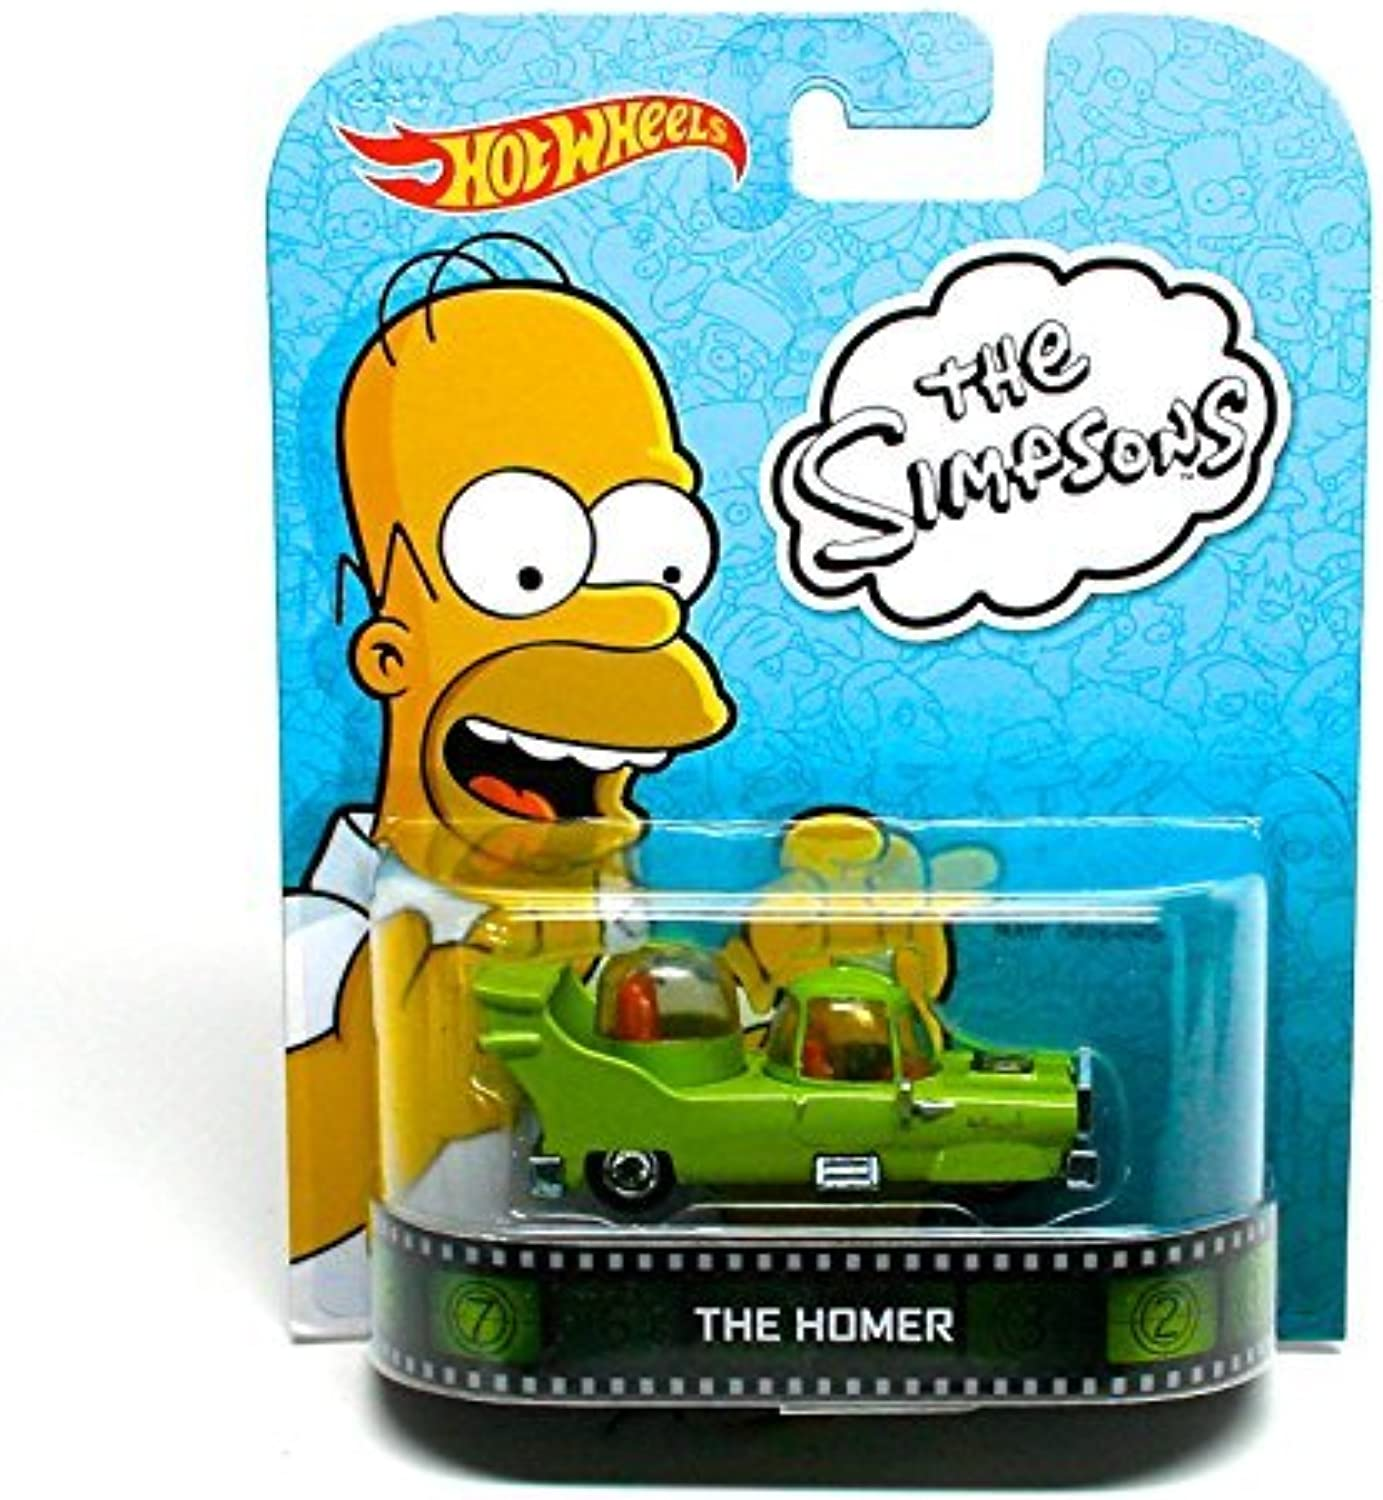 The Homer   The Simpsons  Hot Wheels 2013 Retro Entertainment Series Die Cast Vehicle by Hot Wheels by Hot Wheels